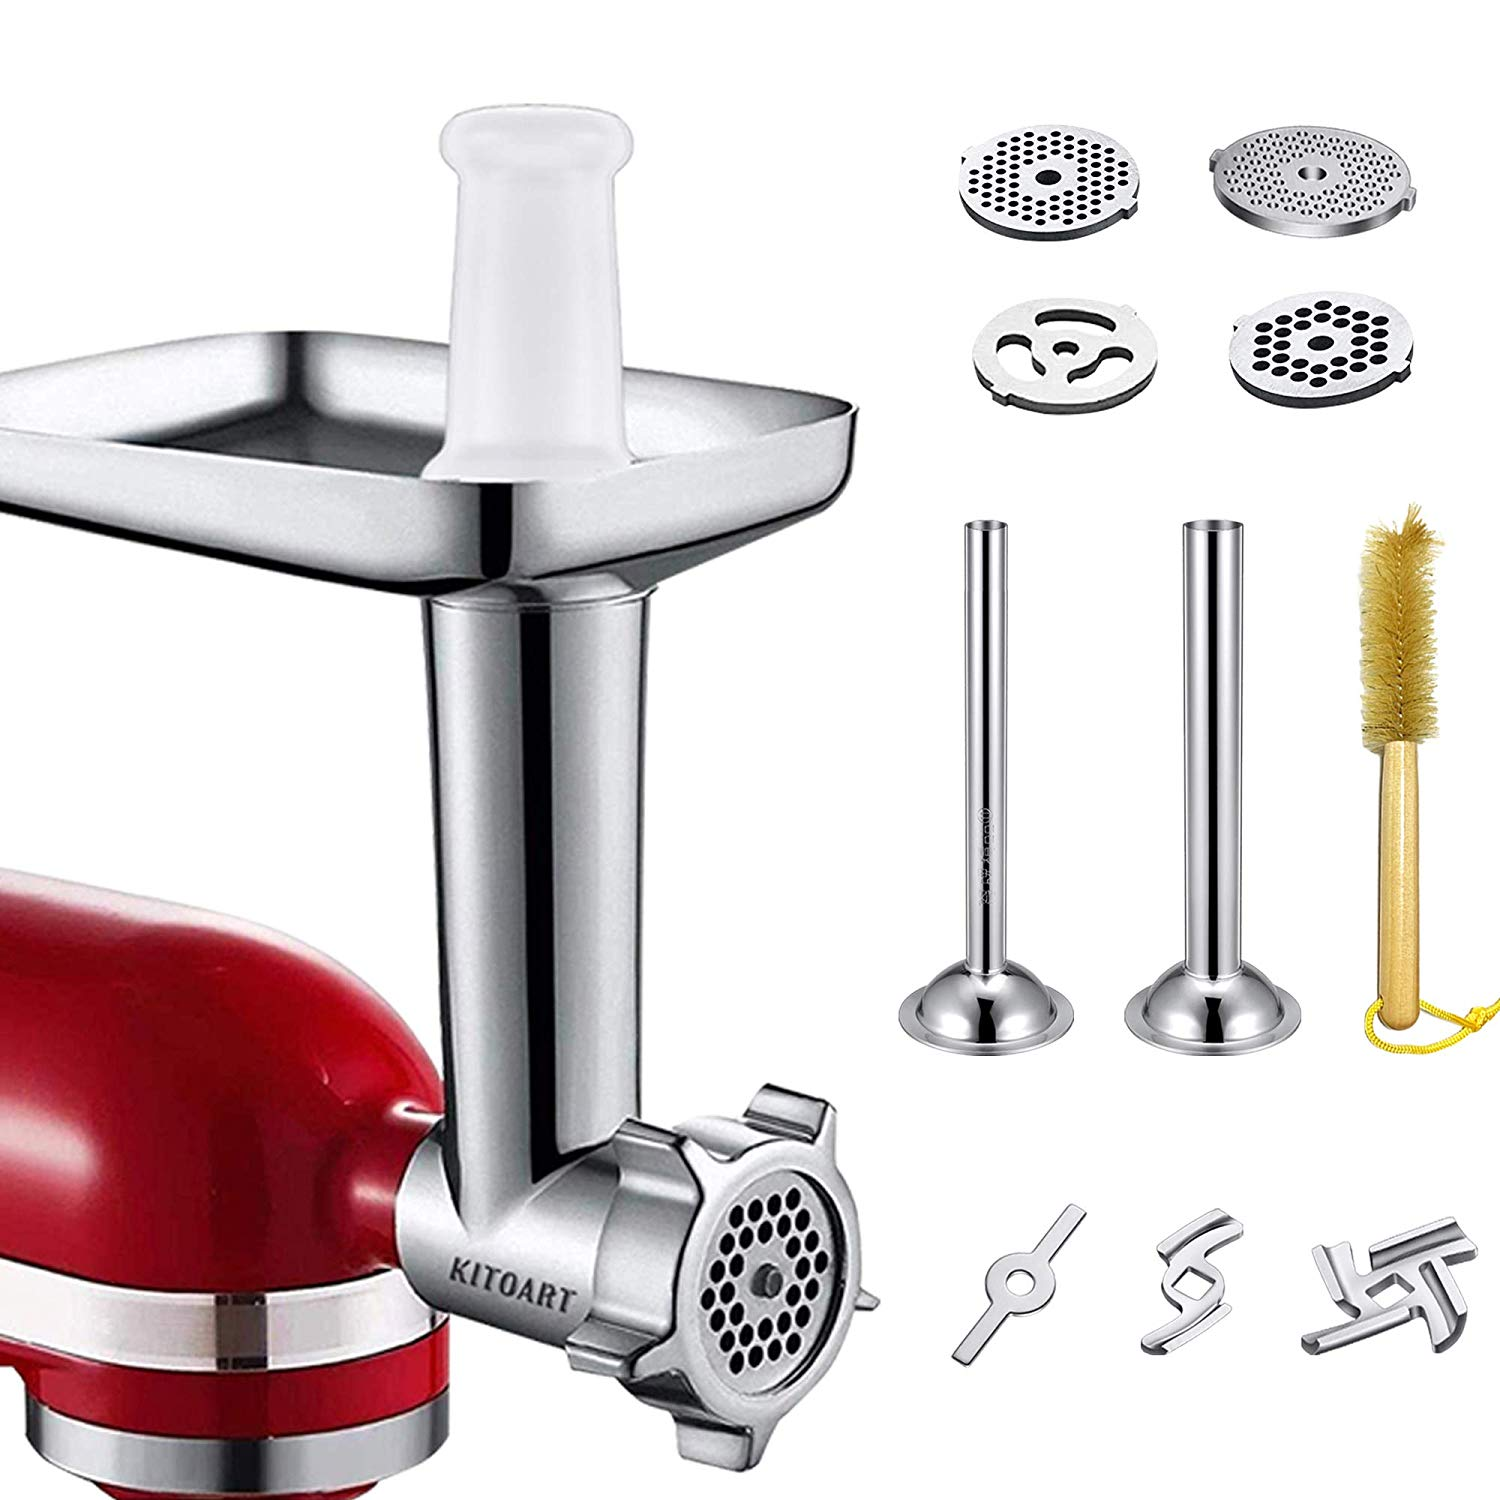 The KITOART Food Meat Grinder Attachment was designed and manufactured by a professional team, perfectly attached to ALL Kitchenaid stand mixers, easily handle various tasks, expediently create ideal dinning at home. KitchenAid   KitchenAid Mixer  KitchenAid Artisan   Artisan Tilt-Head Stand Mixer   KitchenAid Accessories  pasta kitchenaid attachment  kitchenaid blender   kitchenaid mixer on sale  KitchenAid Mixer Review 2019  KitchenAid® Stand Mixer Warranty for the 50 United States